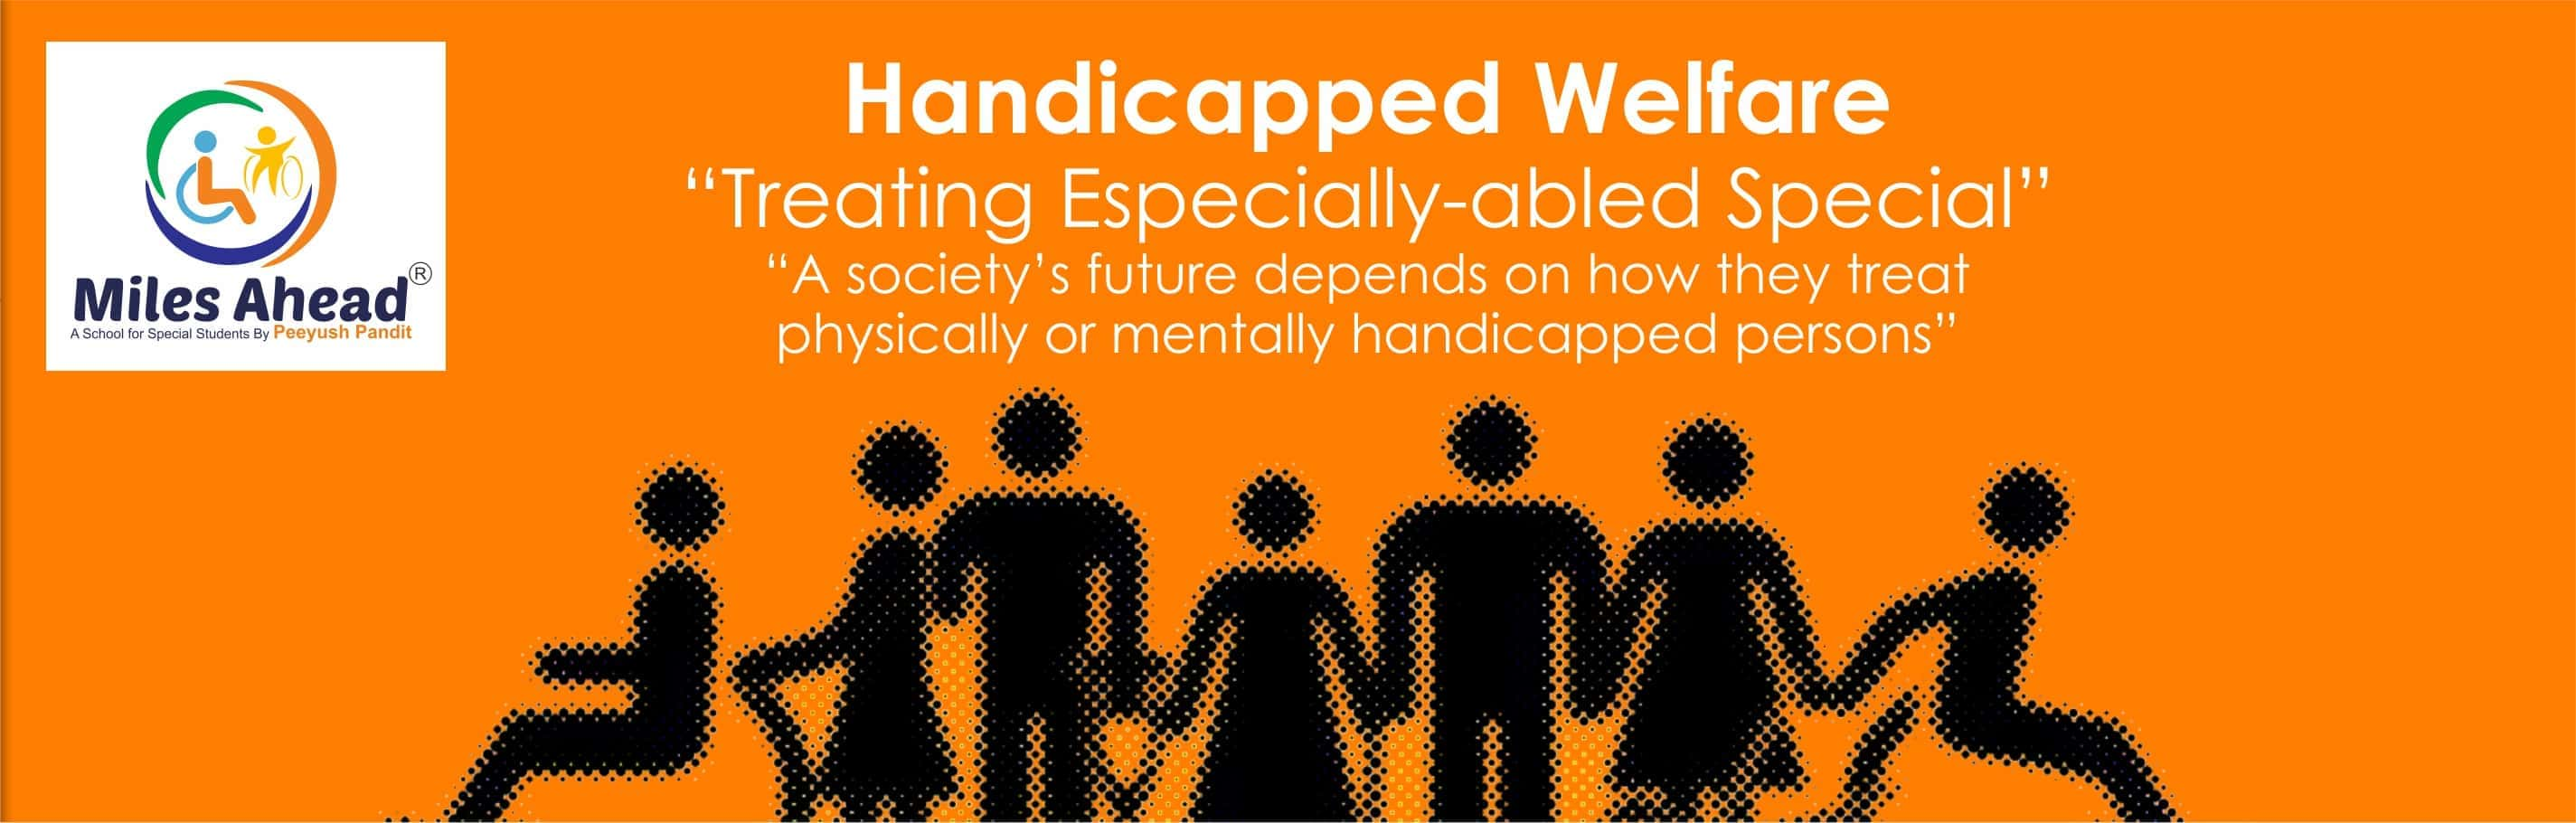 handicapped welfare